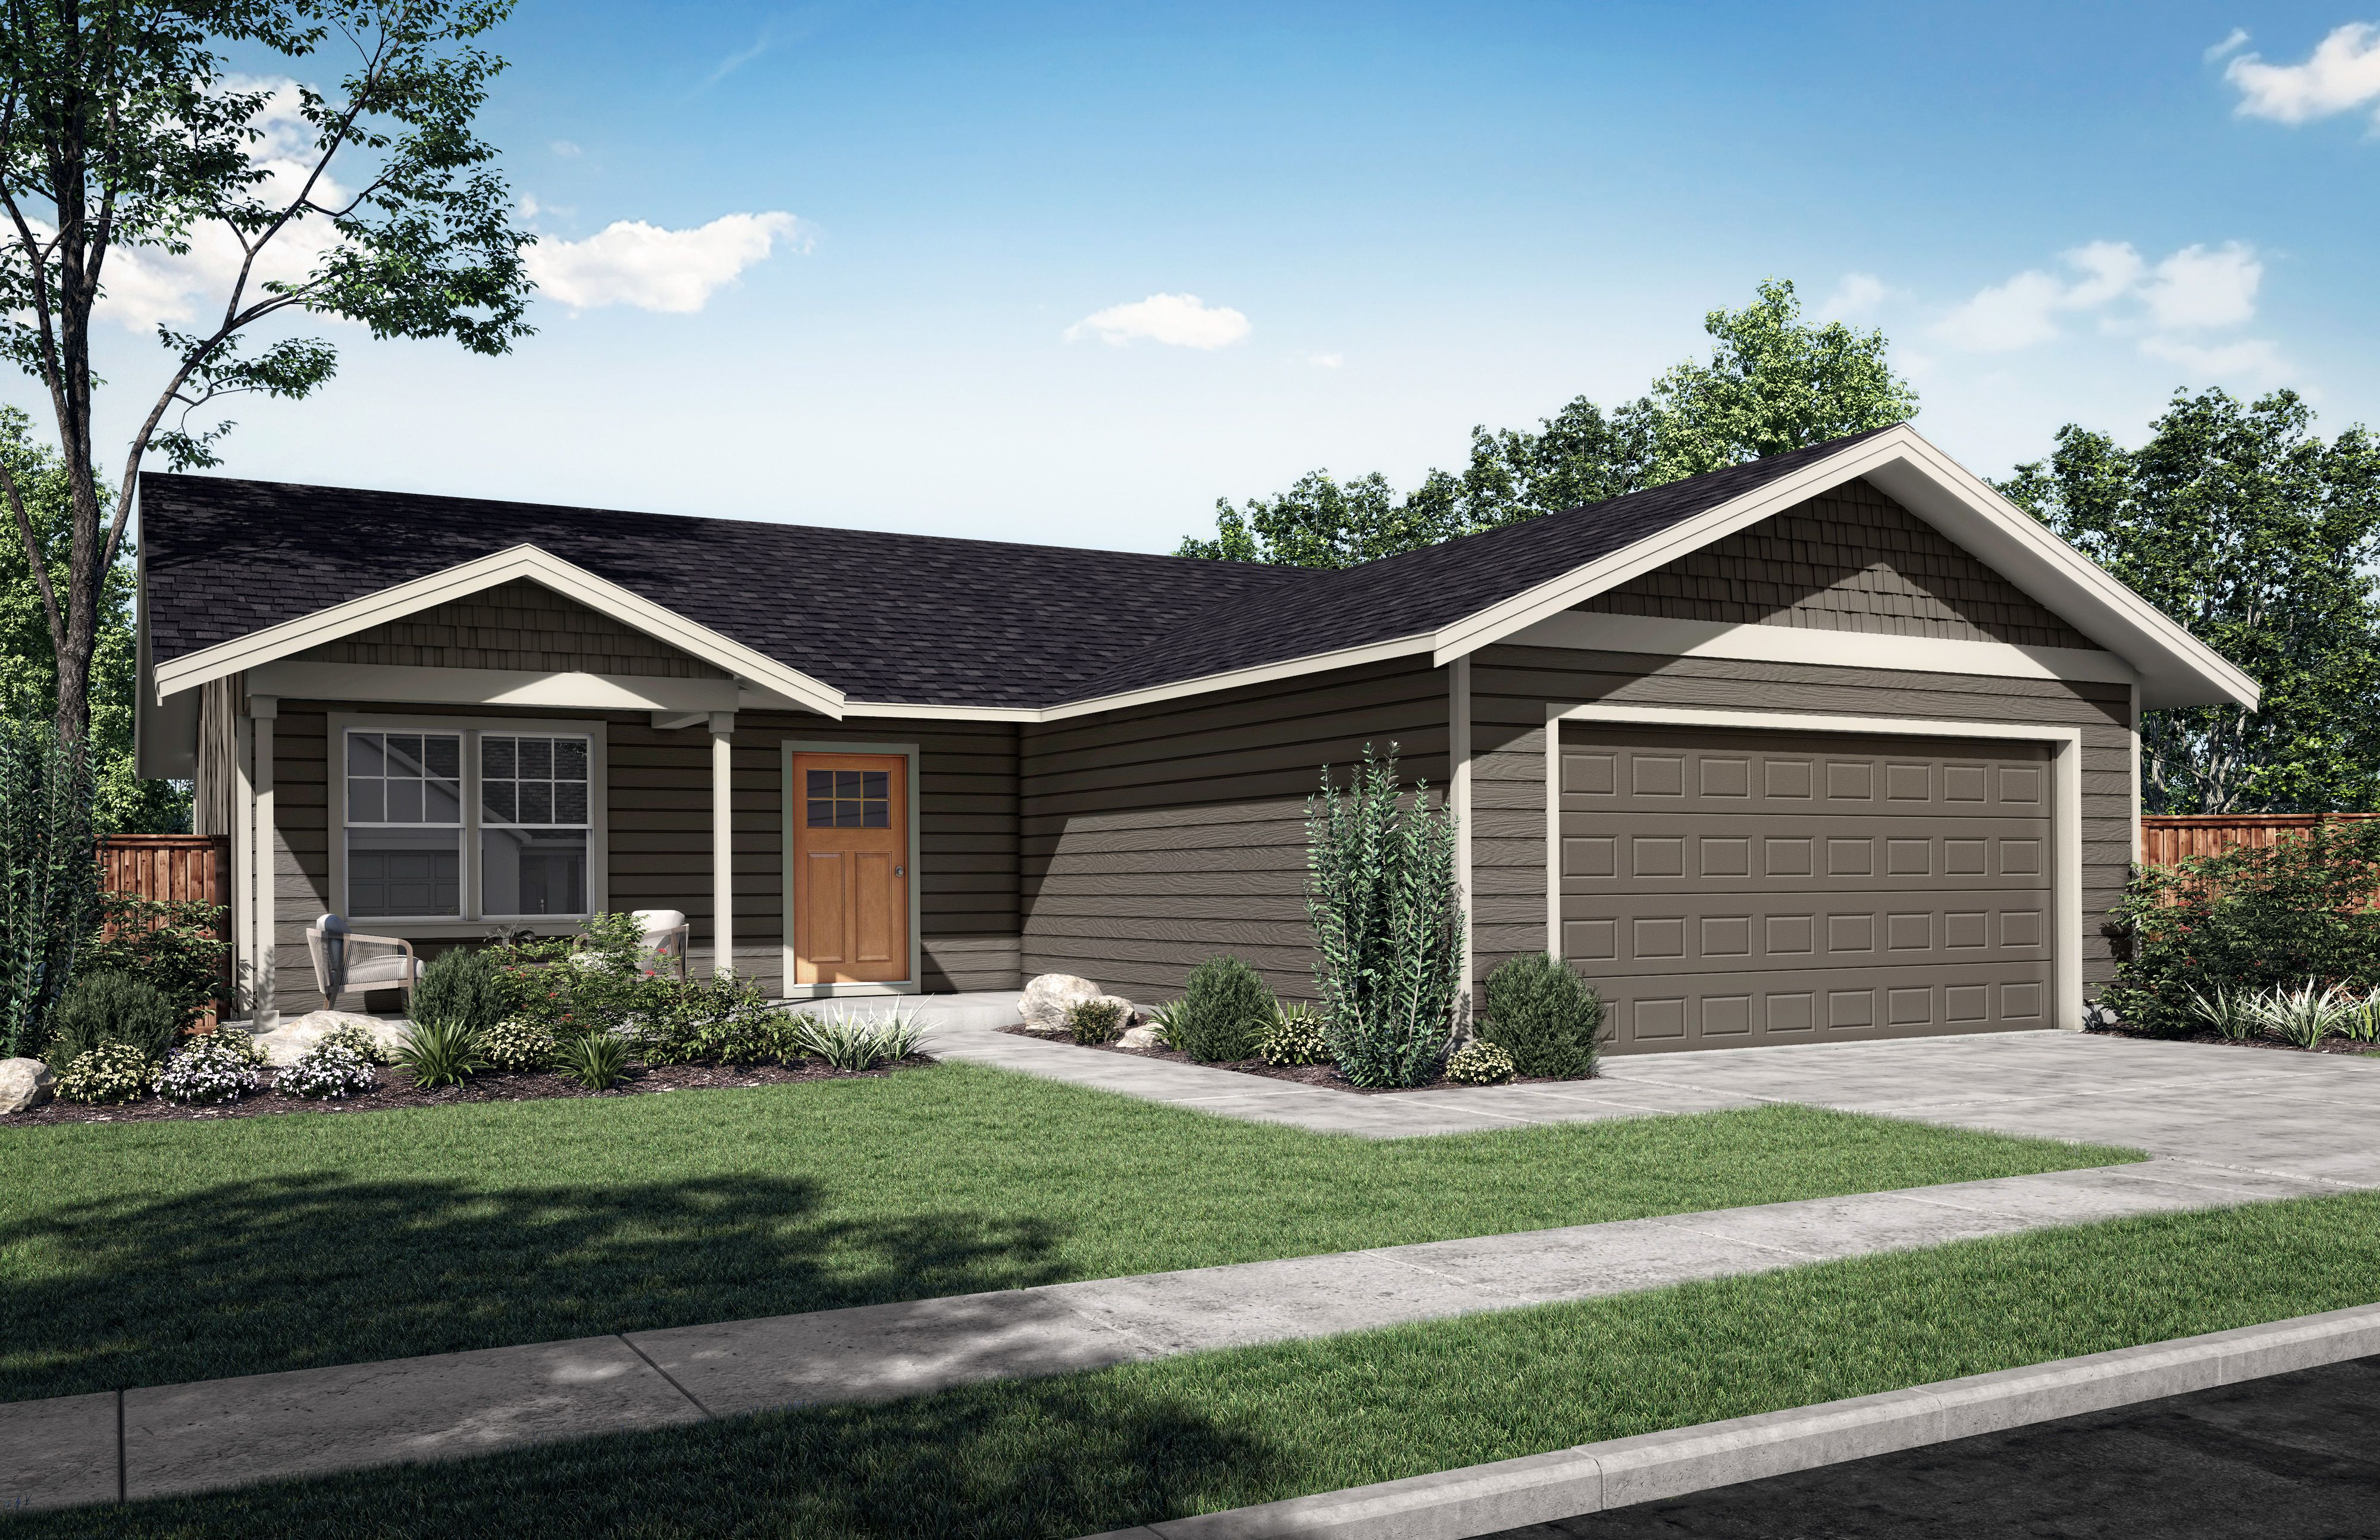 'River Ridge Estates' by Woodhill Homes in Richland